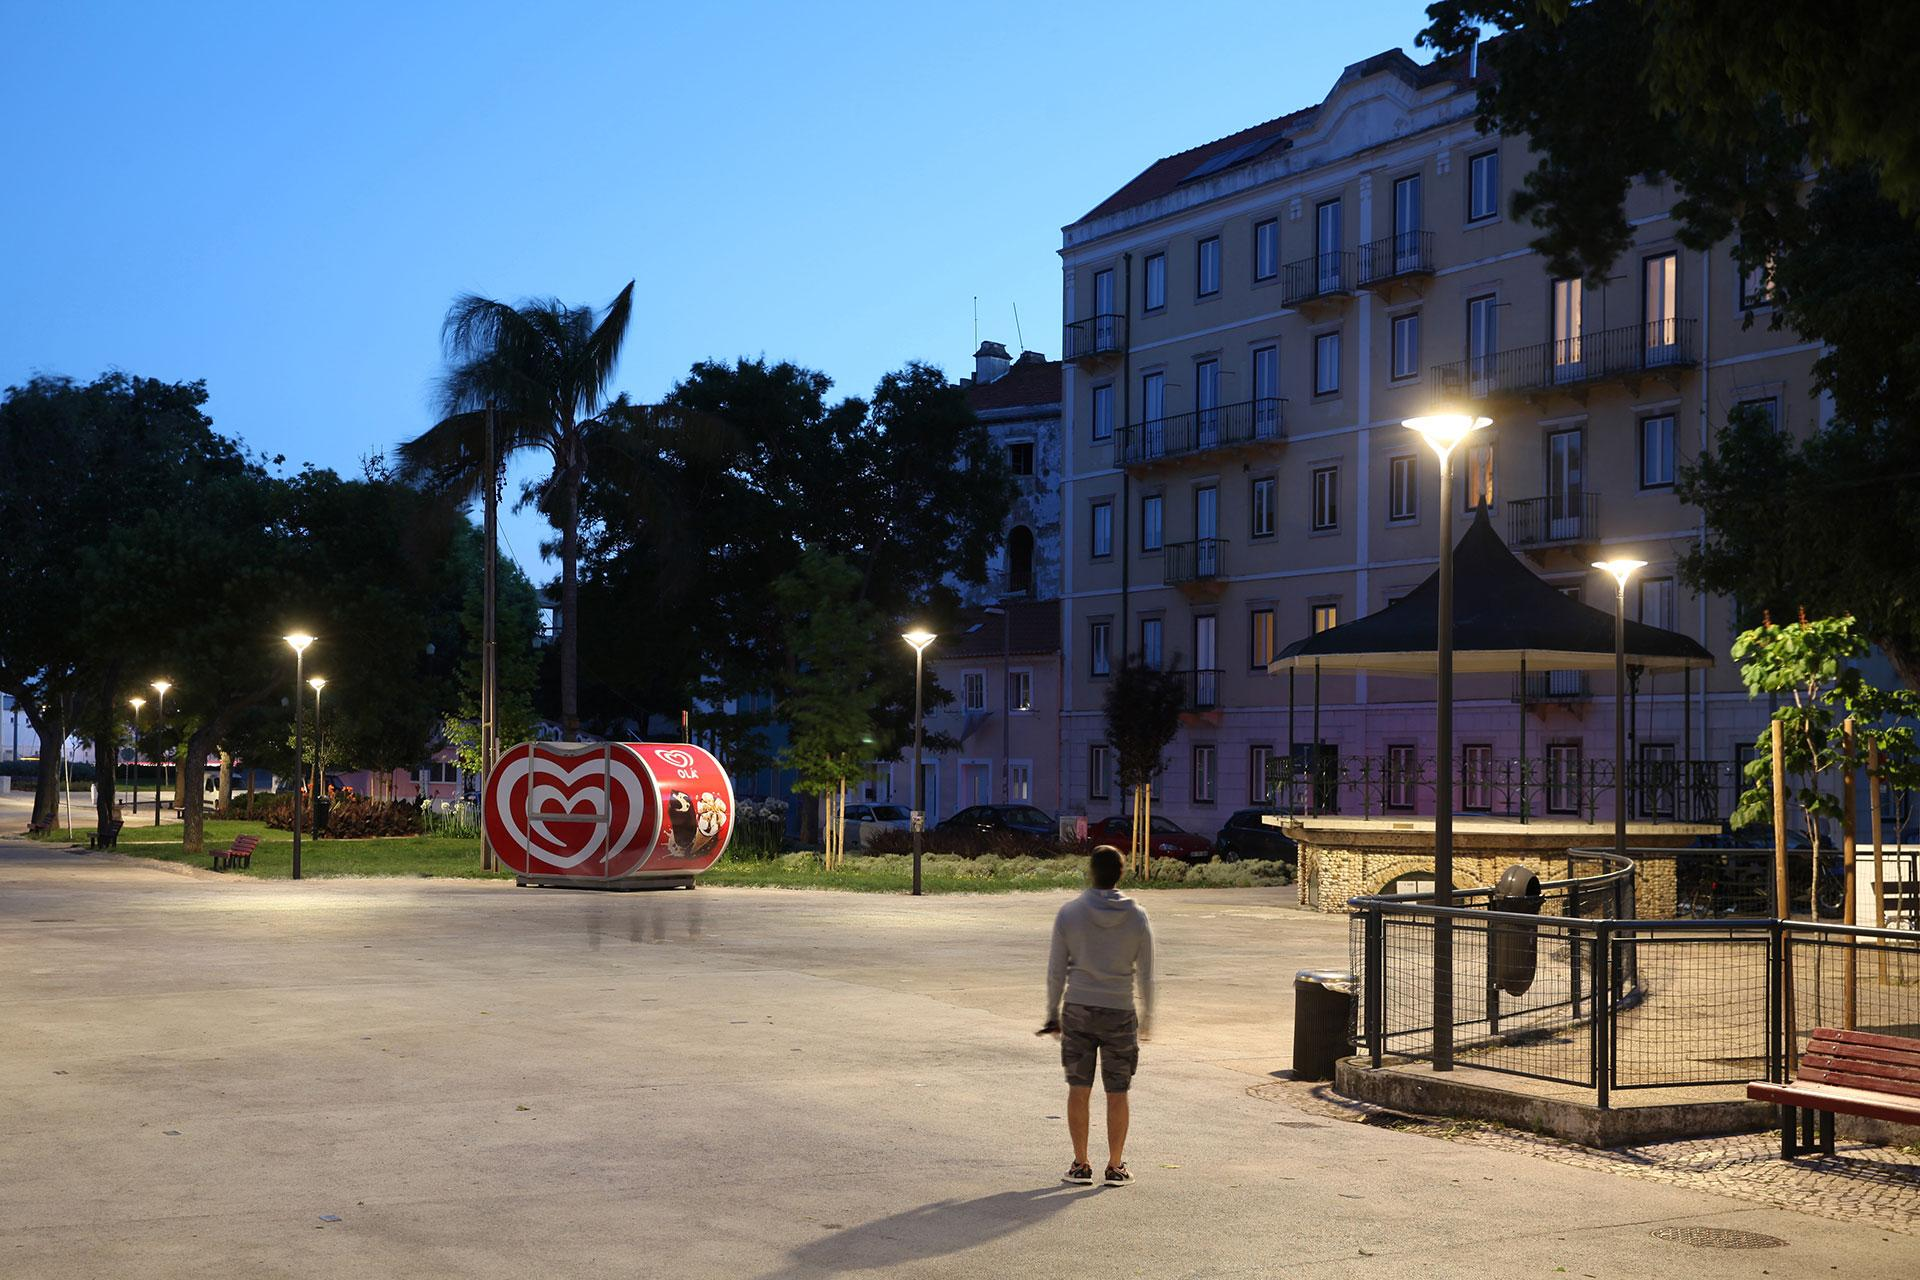 The Oyo delivers a warm white light to turn Paco de Arcos park into an inviting nocturnal space